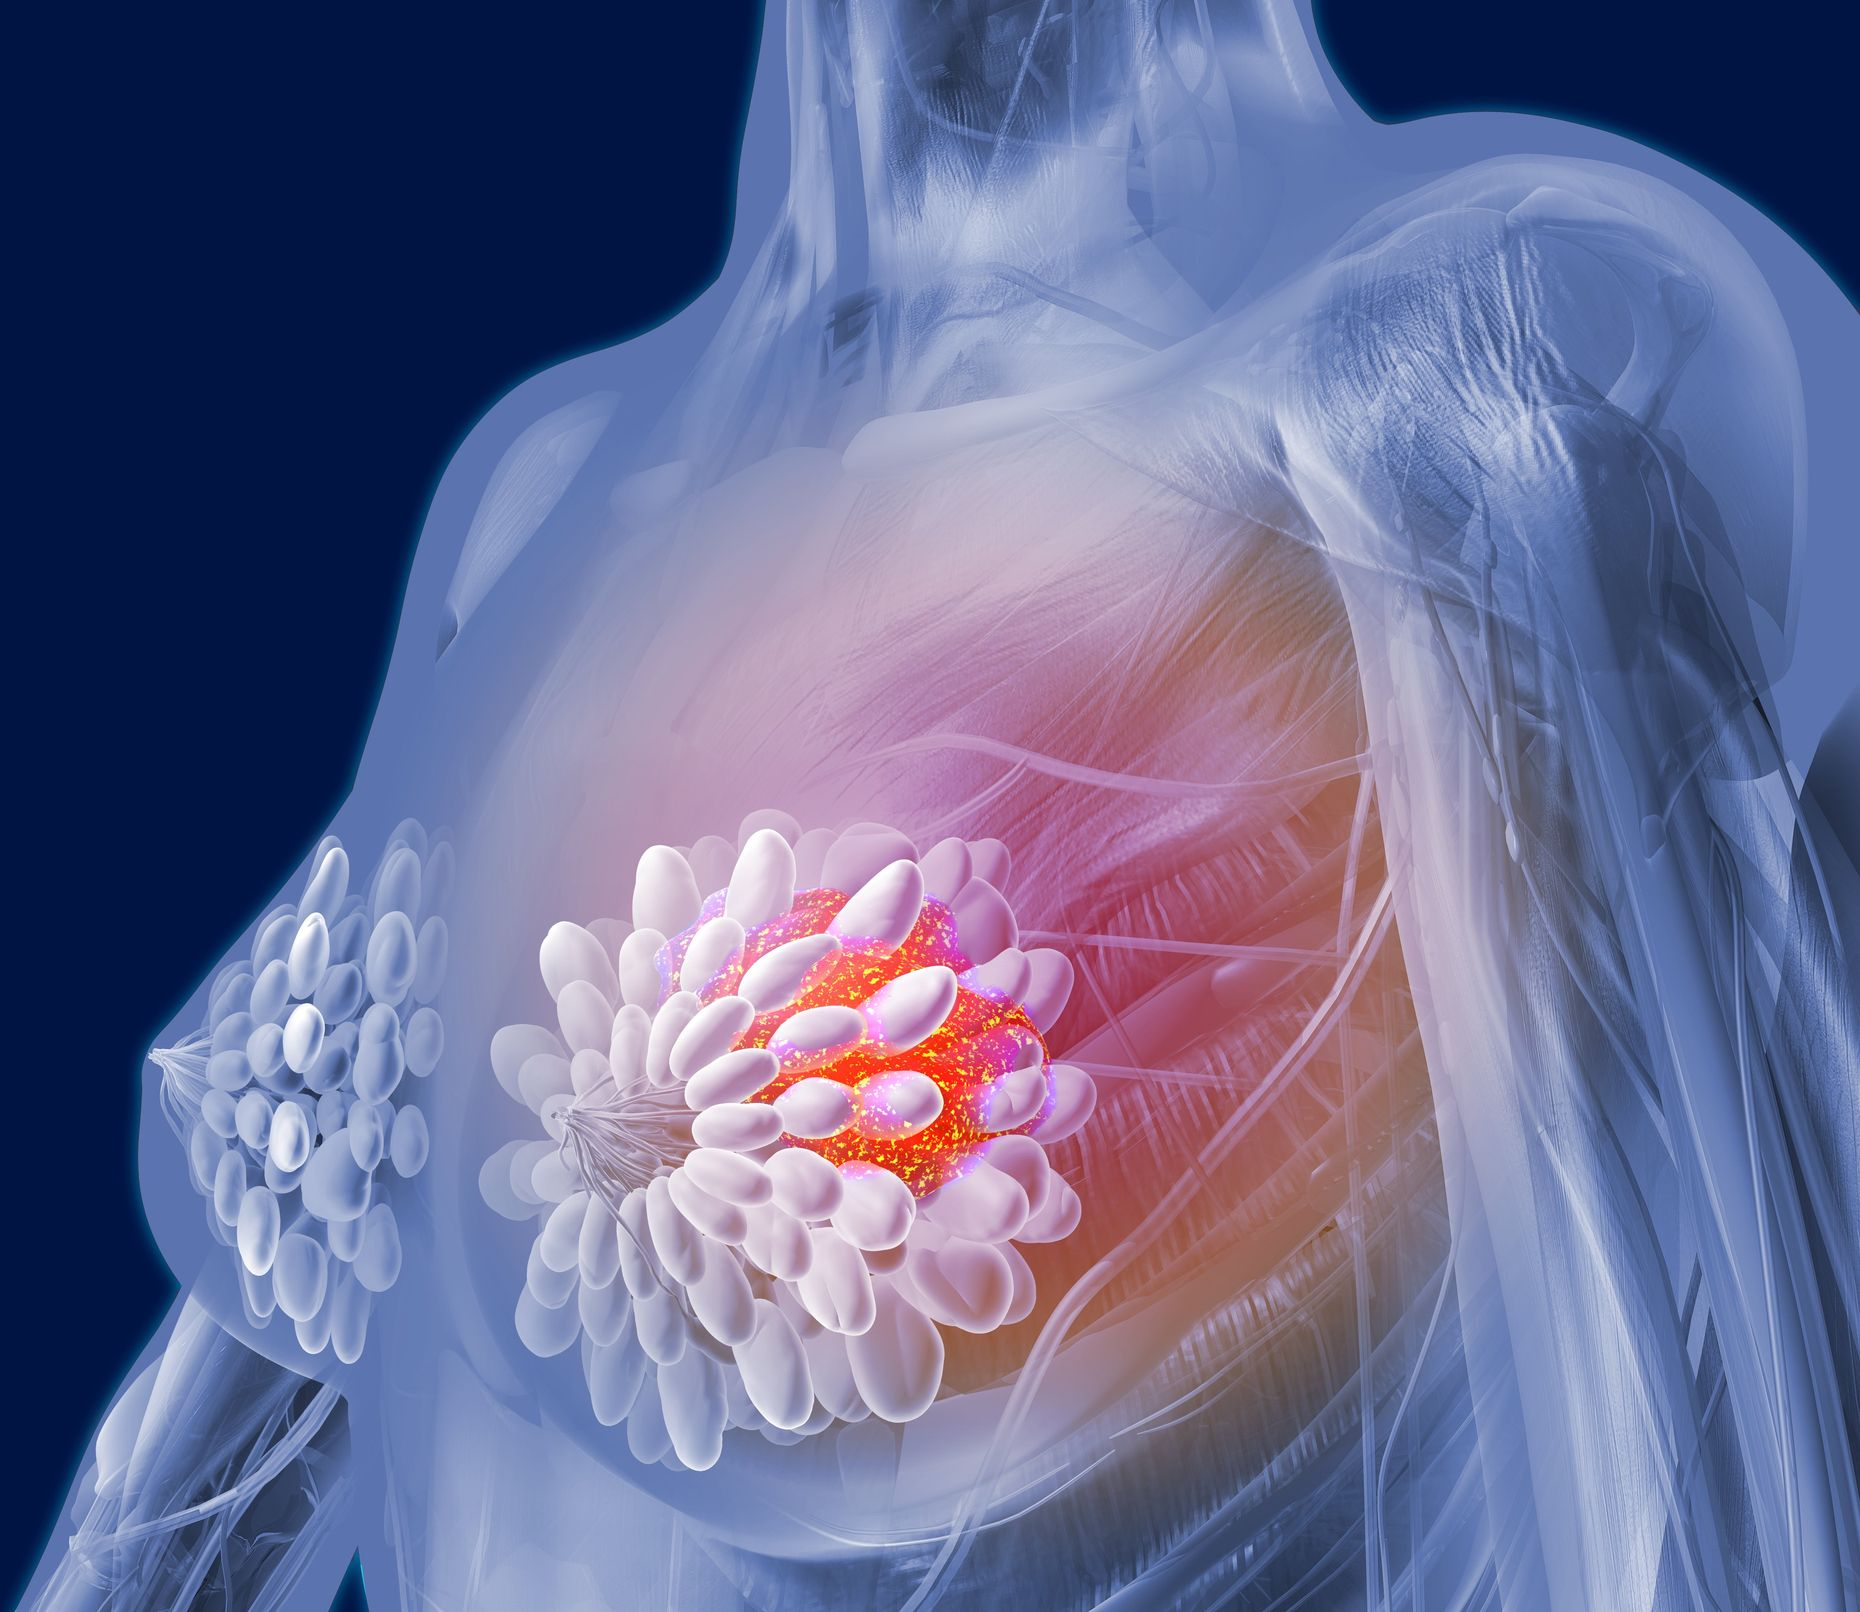 How is breast cancer prevented